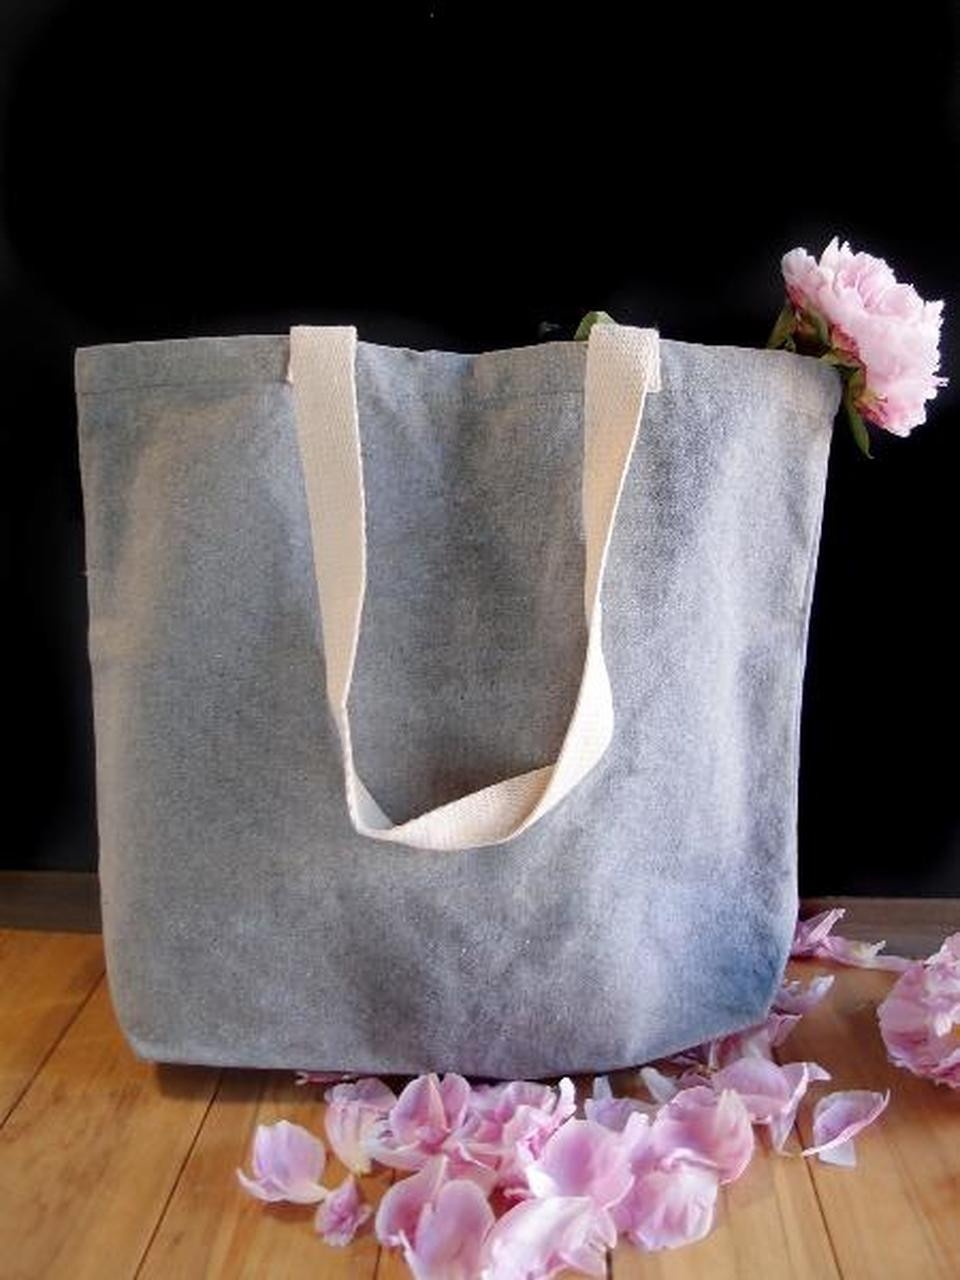 Recycled Cotton Bags, Wholesale Cotton Tote Bags, Grey Recycled Canvas Tote 18 x 15 x 5 3/4 inches B894-70 | Packaging Decor